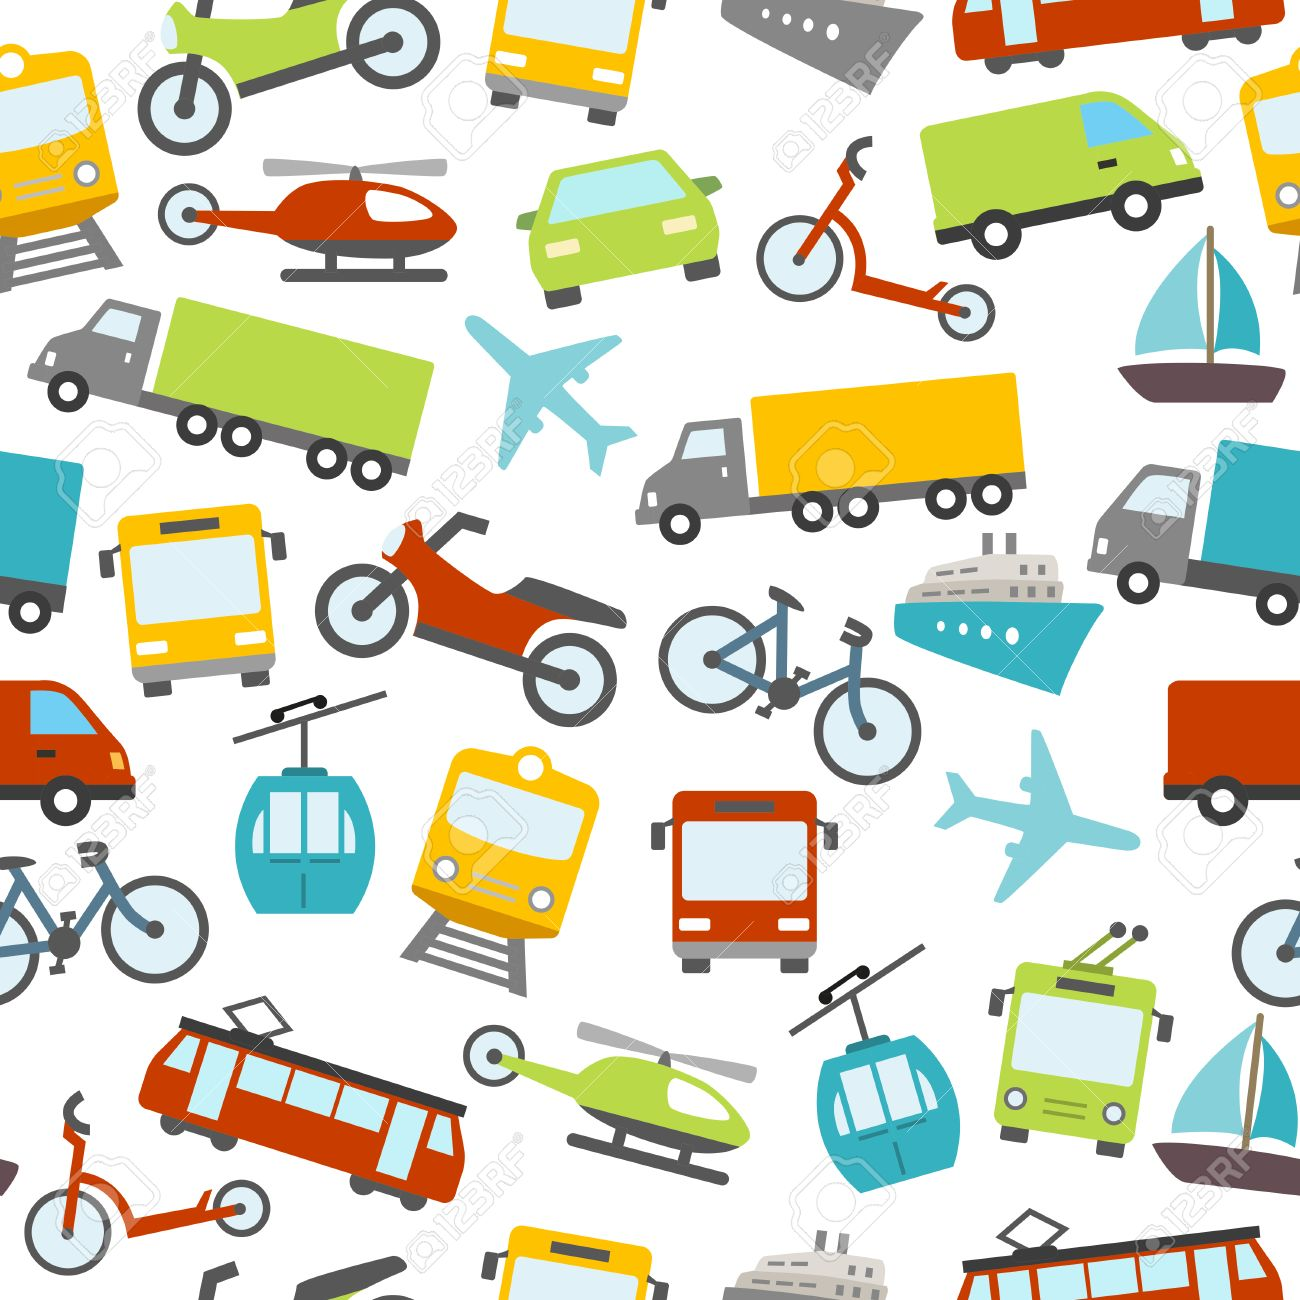 Seamless pattern with cars, buses, trams and others means of transport. Can be used as a wallpaper decoration or as a design for a printable card. Stock Vector - 50454587